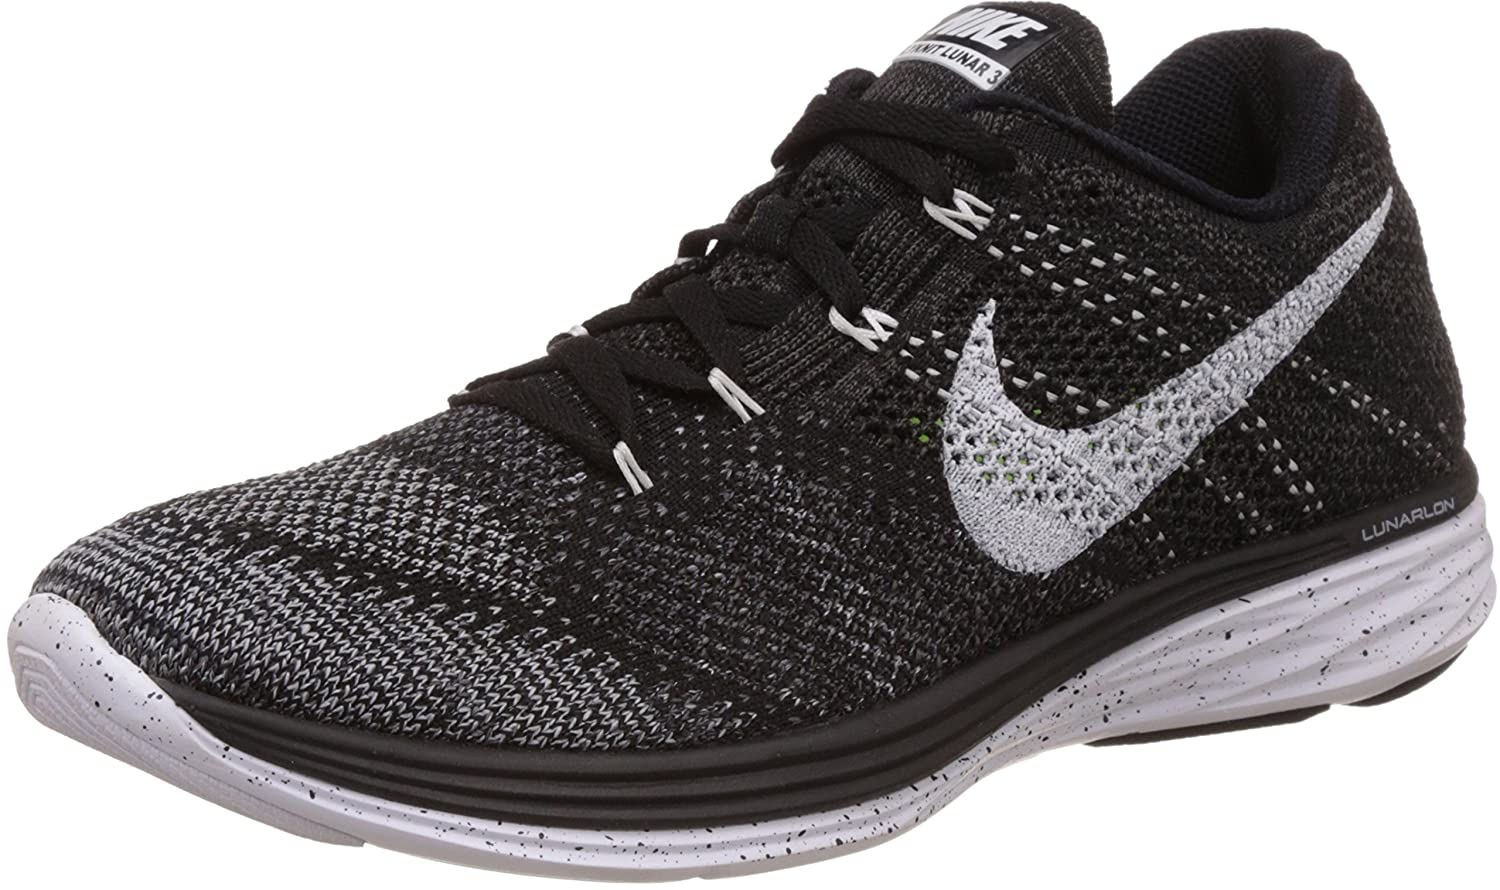 brand new a1cc6 2d039 Amazon.com  Nike Women s Flyknit Lunar3 Running Shoe  Nike  Shoes